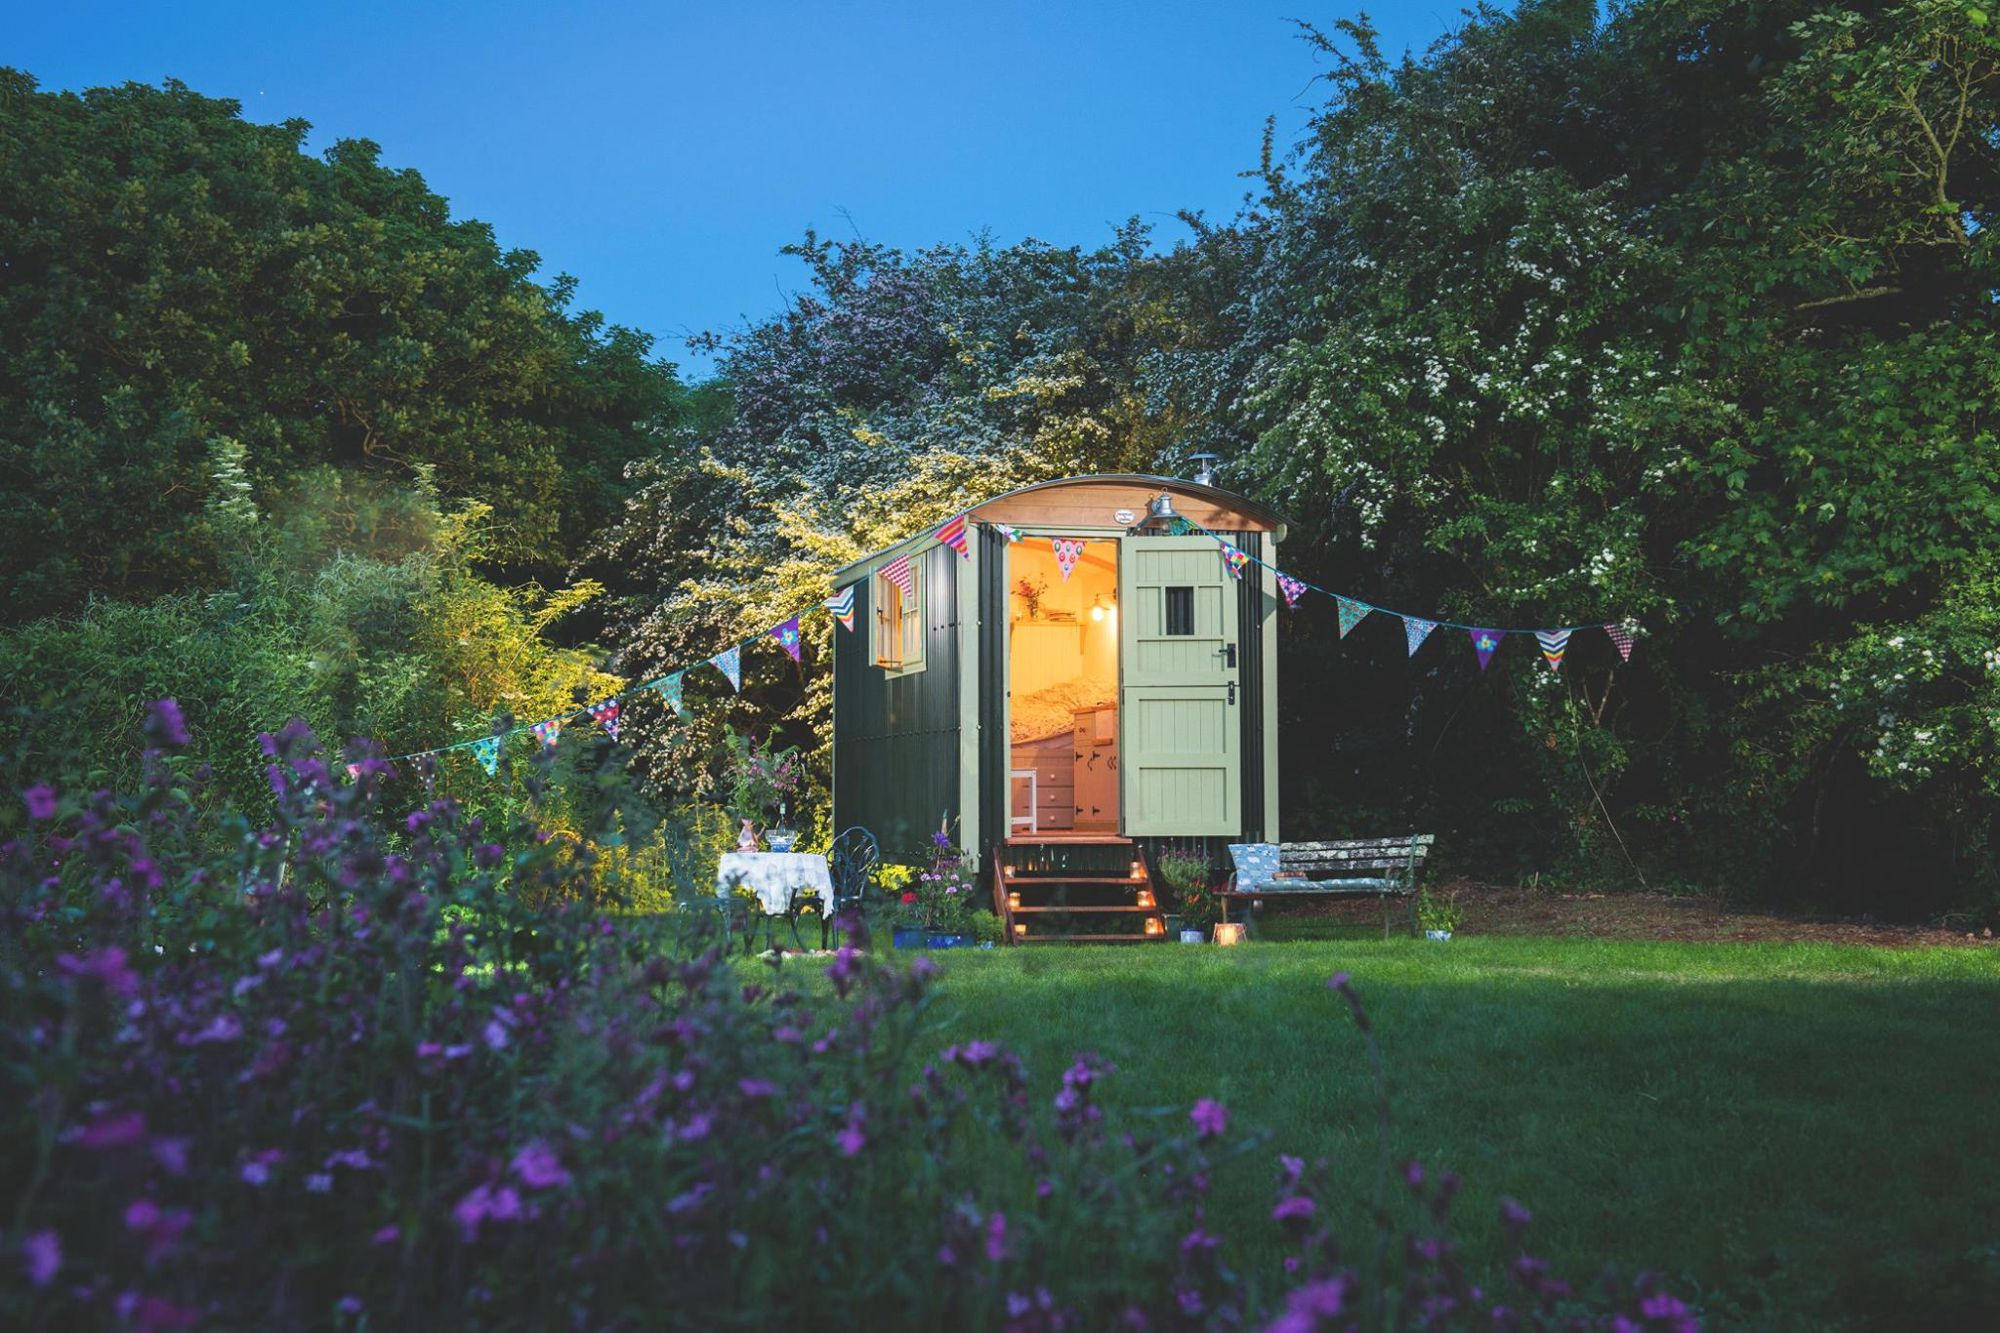 Free Range Escapes: A private shepherd's hut retreat set in North Cornwall's most accidentally excellent setting; the overgrown Tregildrans quarry.